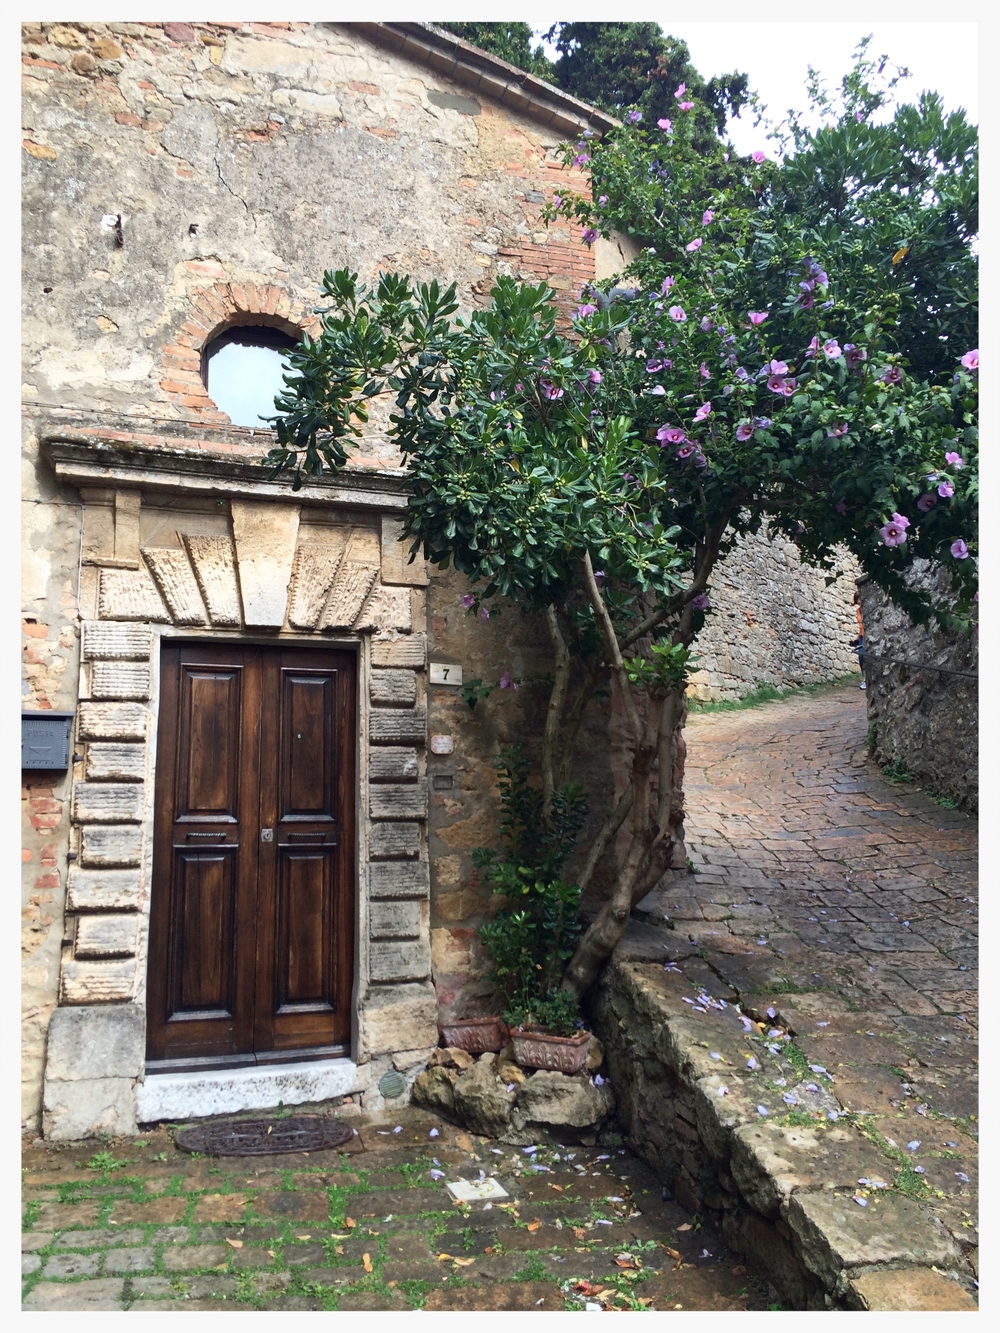 A charming stone home tucked into the hills of Volterra